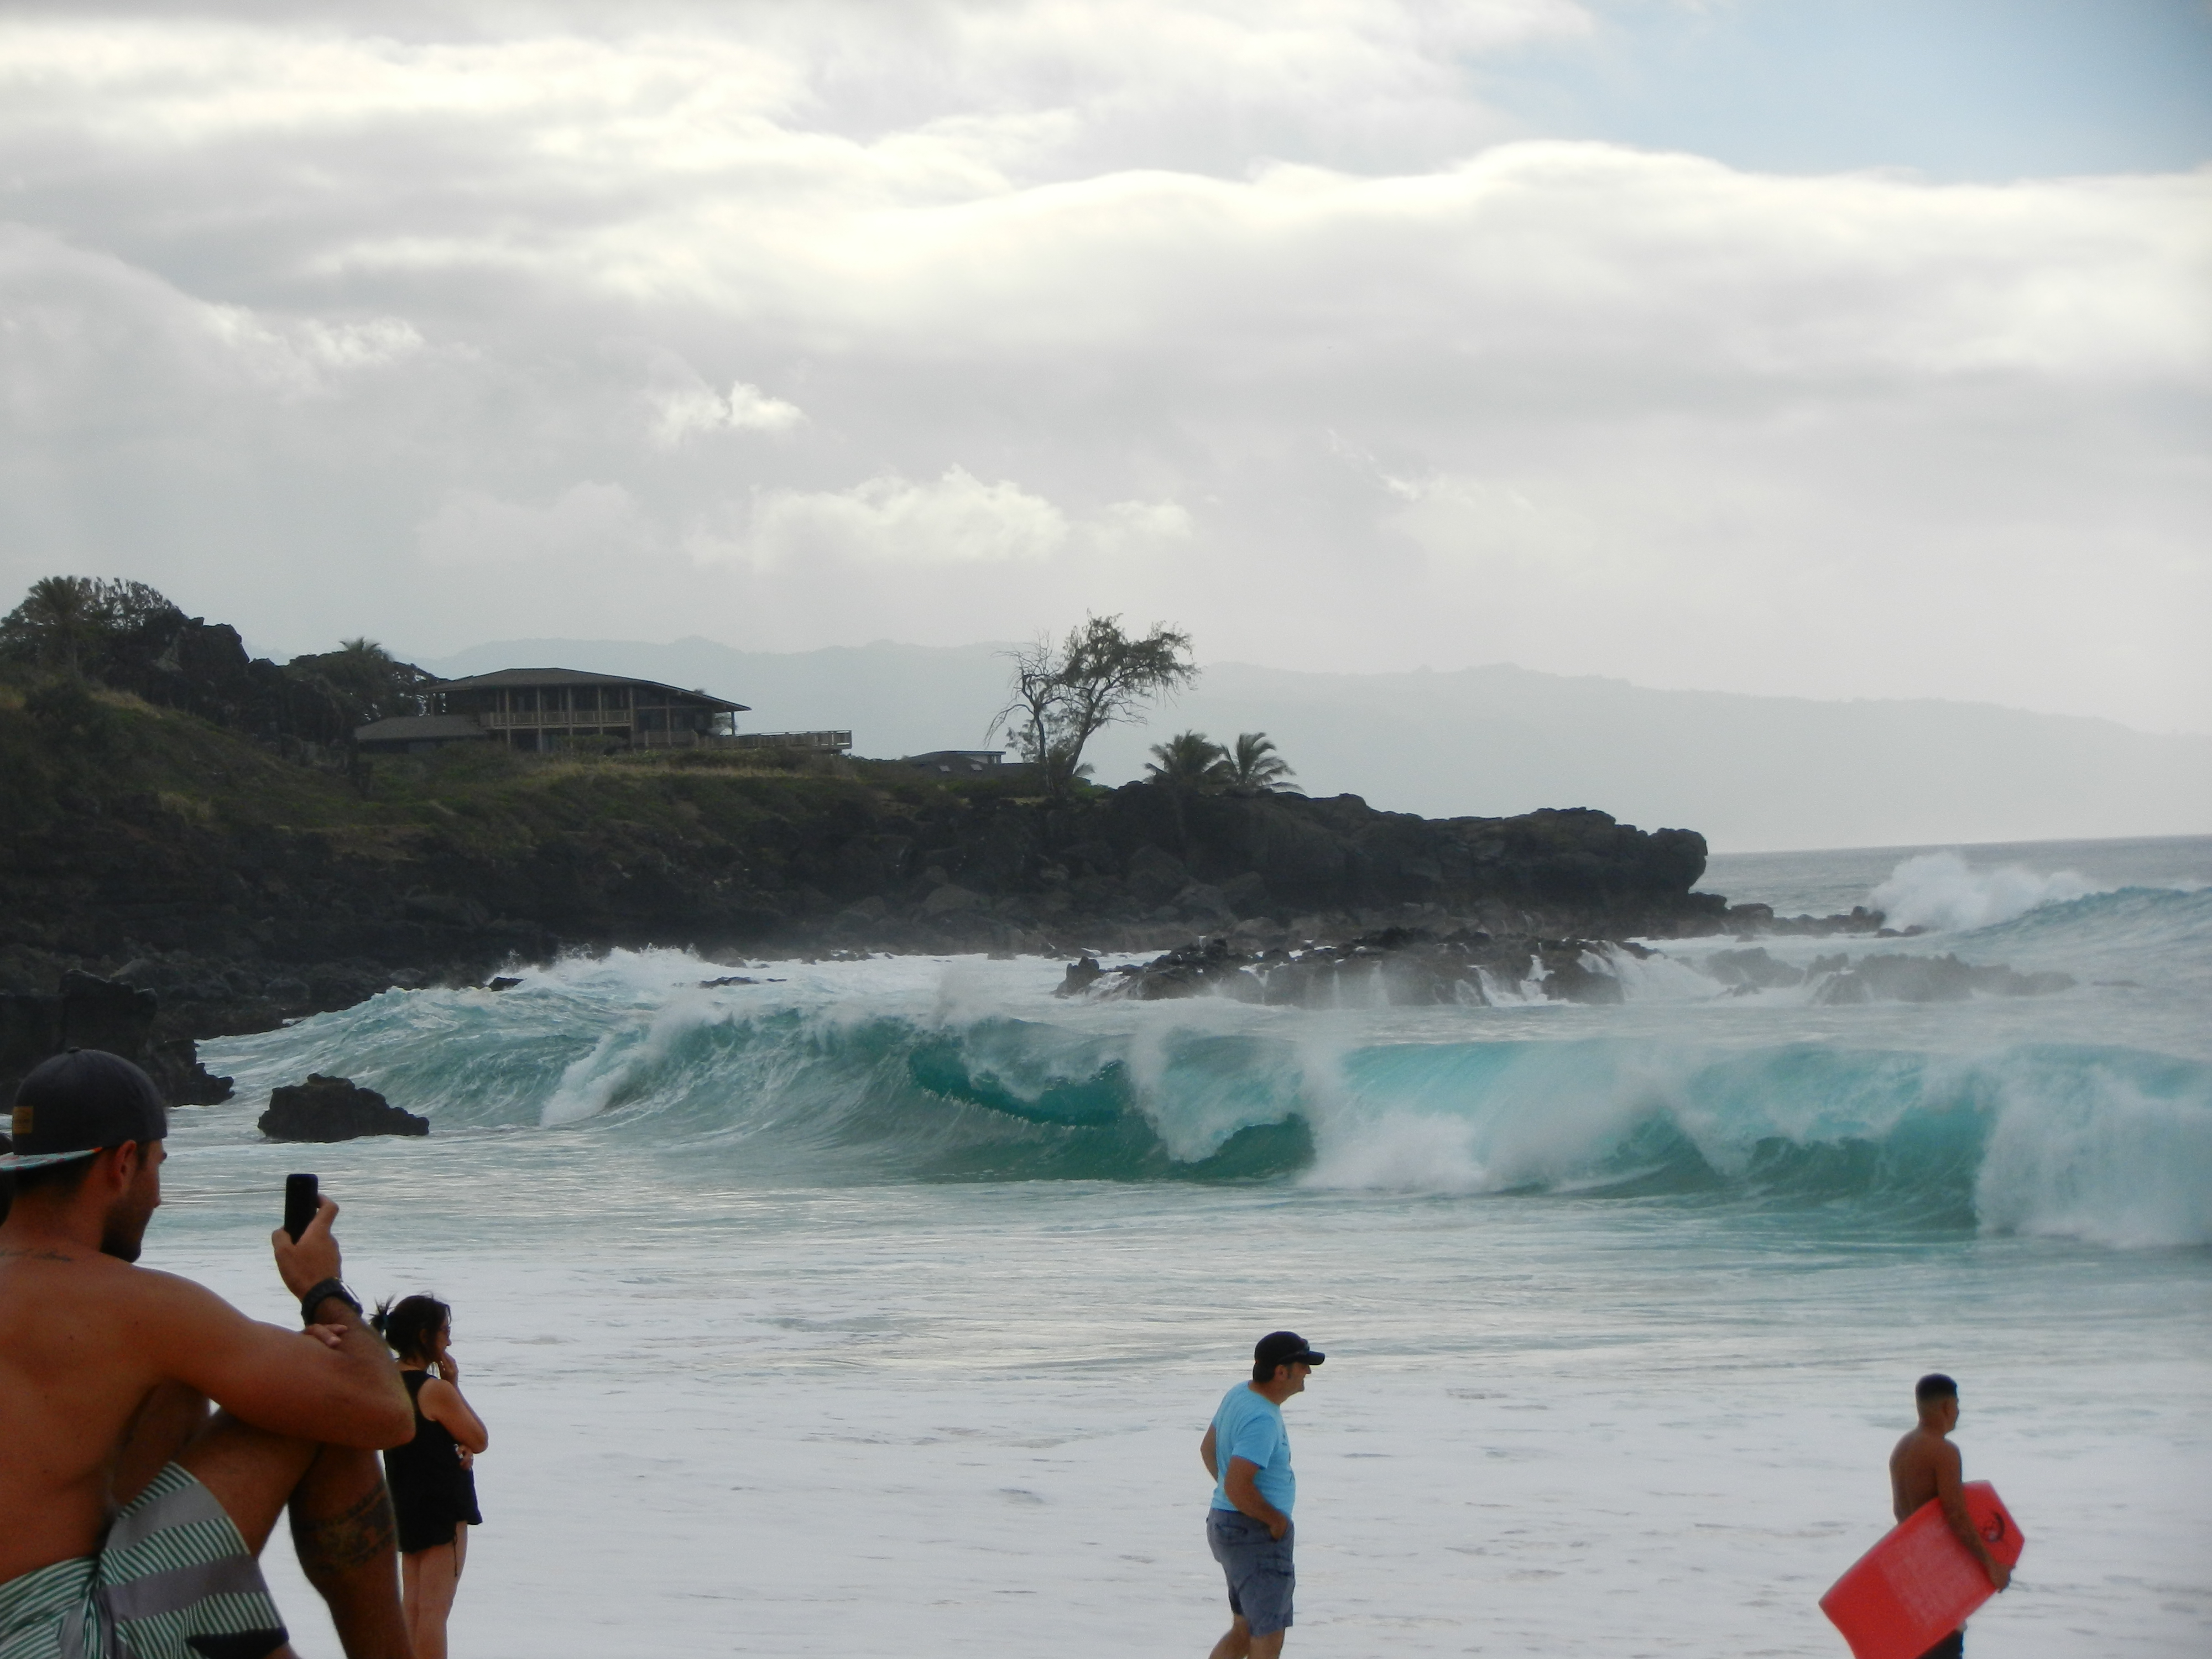 Huge ocean waves crashing onto beach in background with spectators in the foreground.